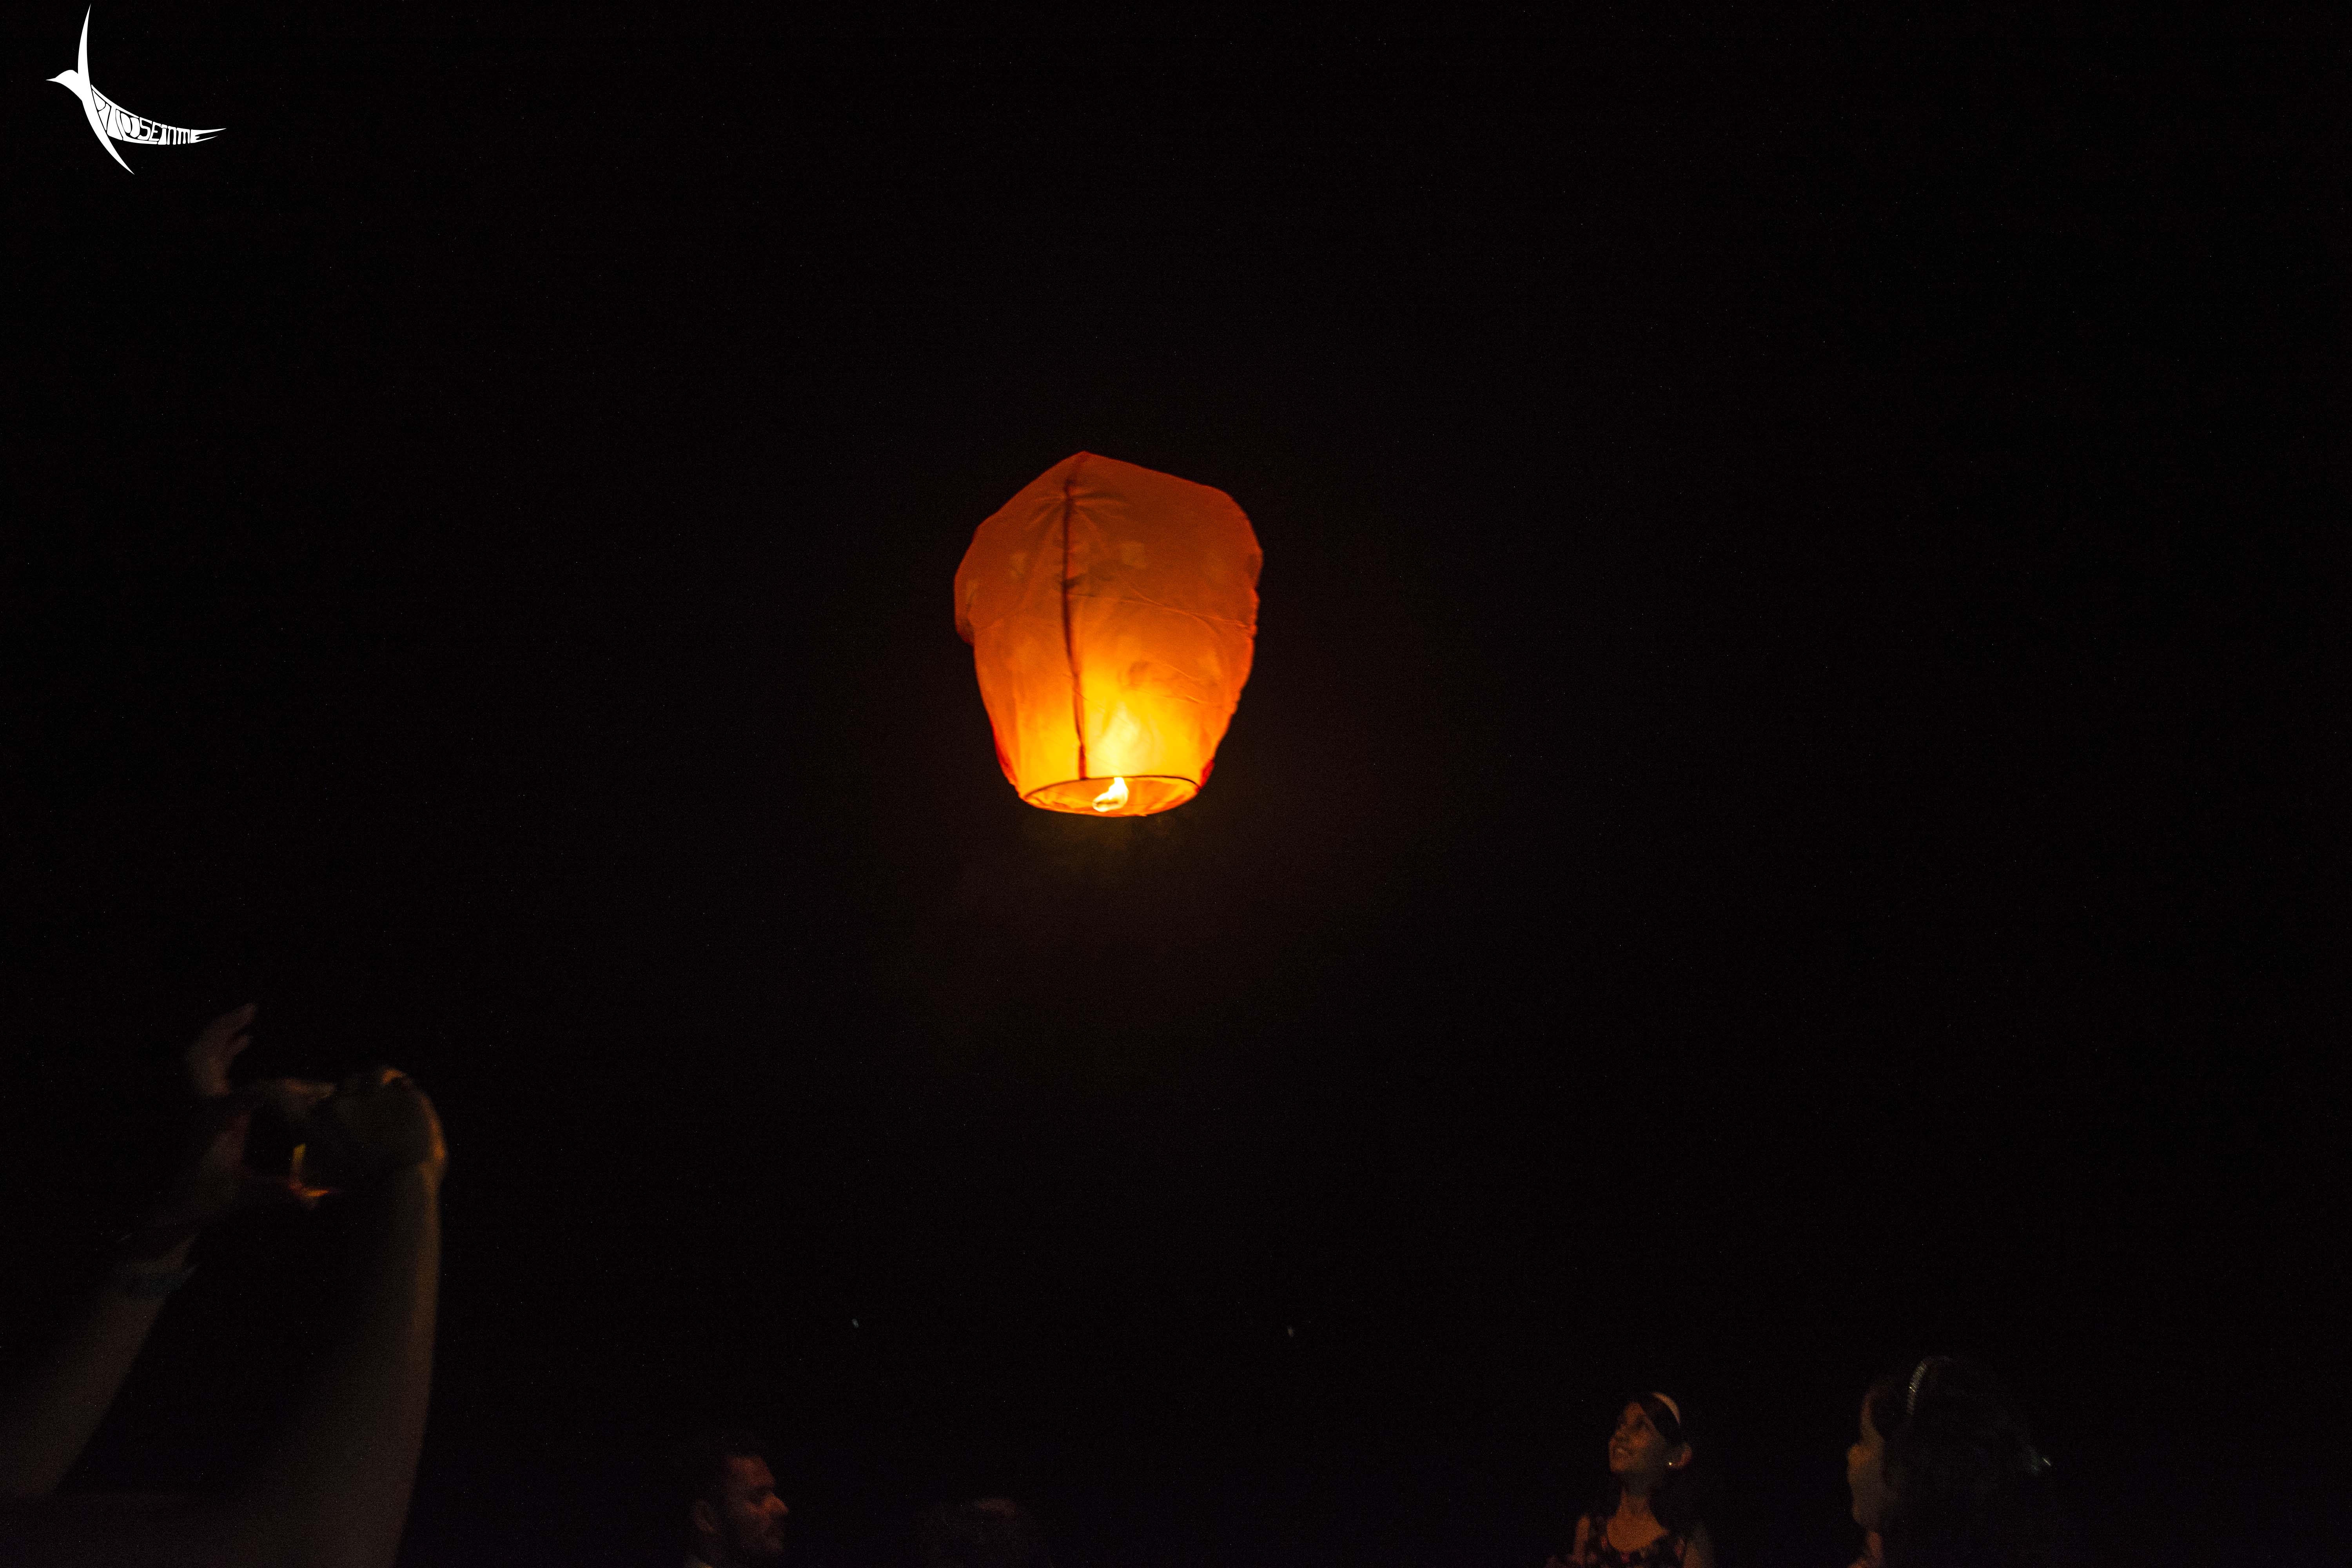 Children delightfully watches the lantern flying high